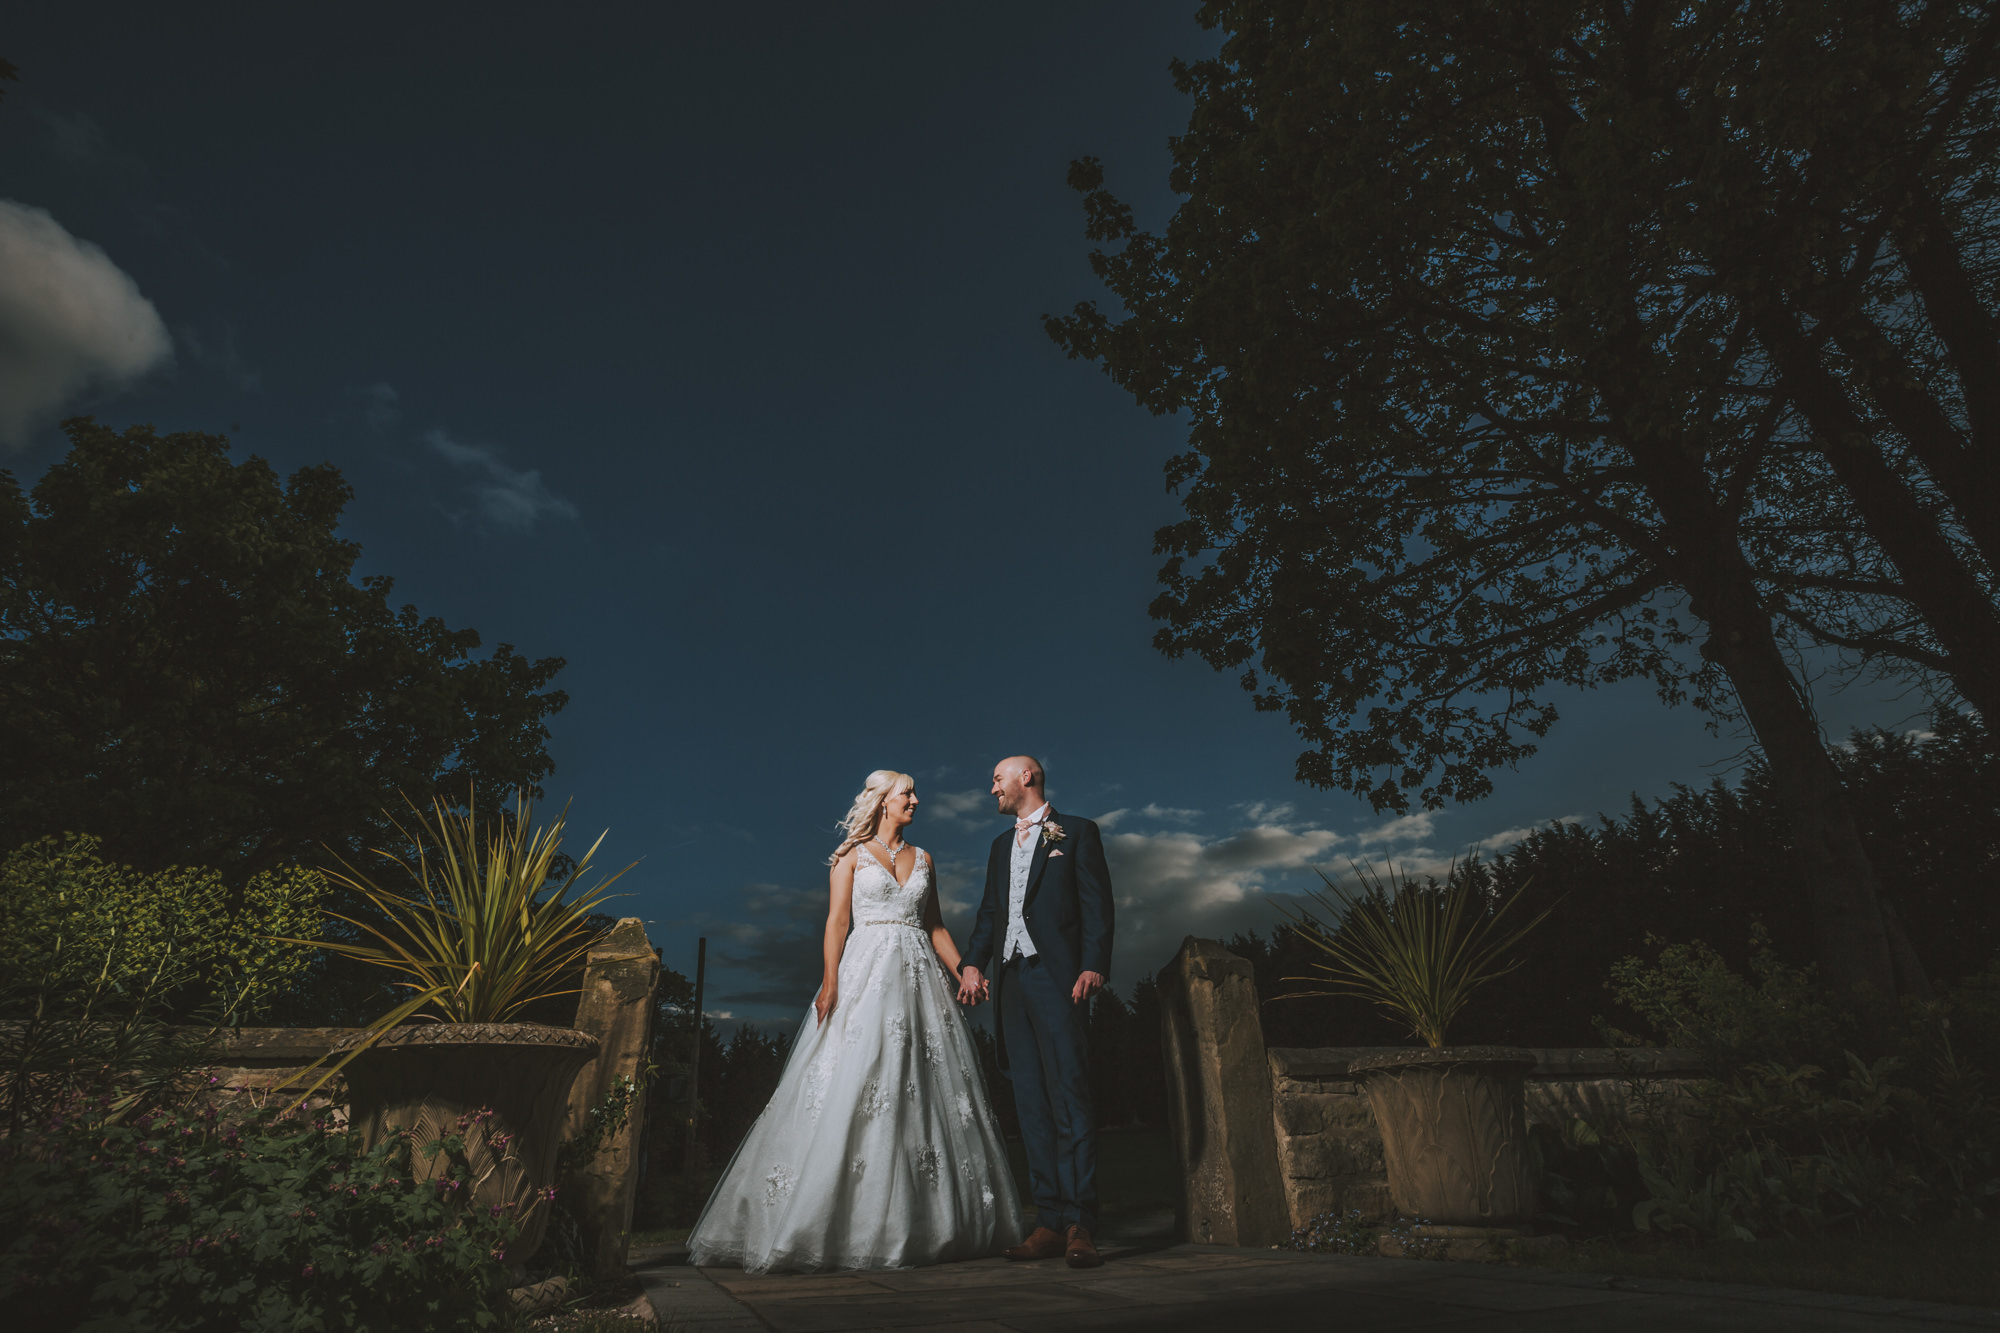 hellaby hall wedding photographers in rotherham, yorkshire-72.jpg